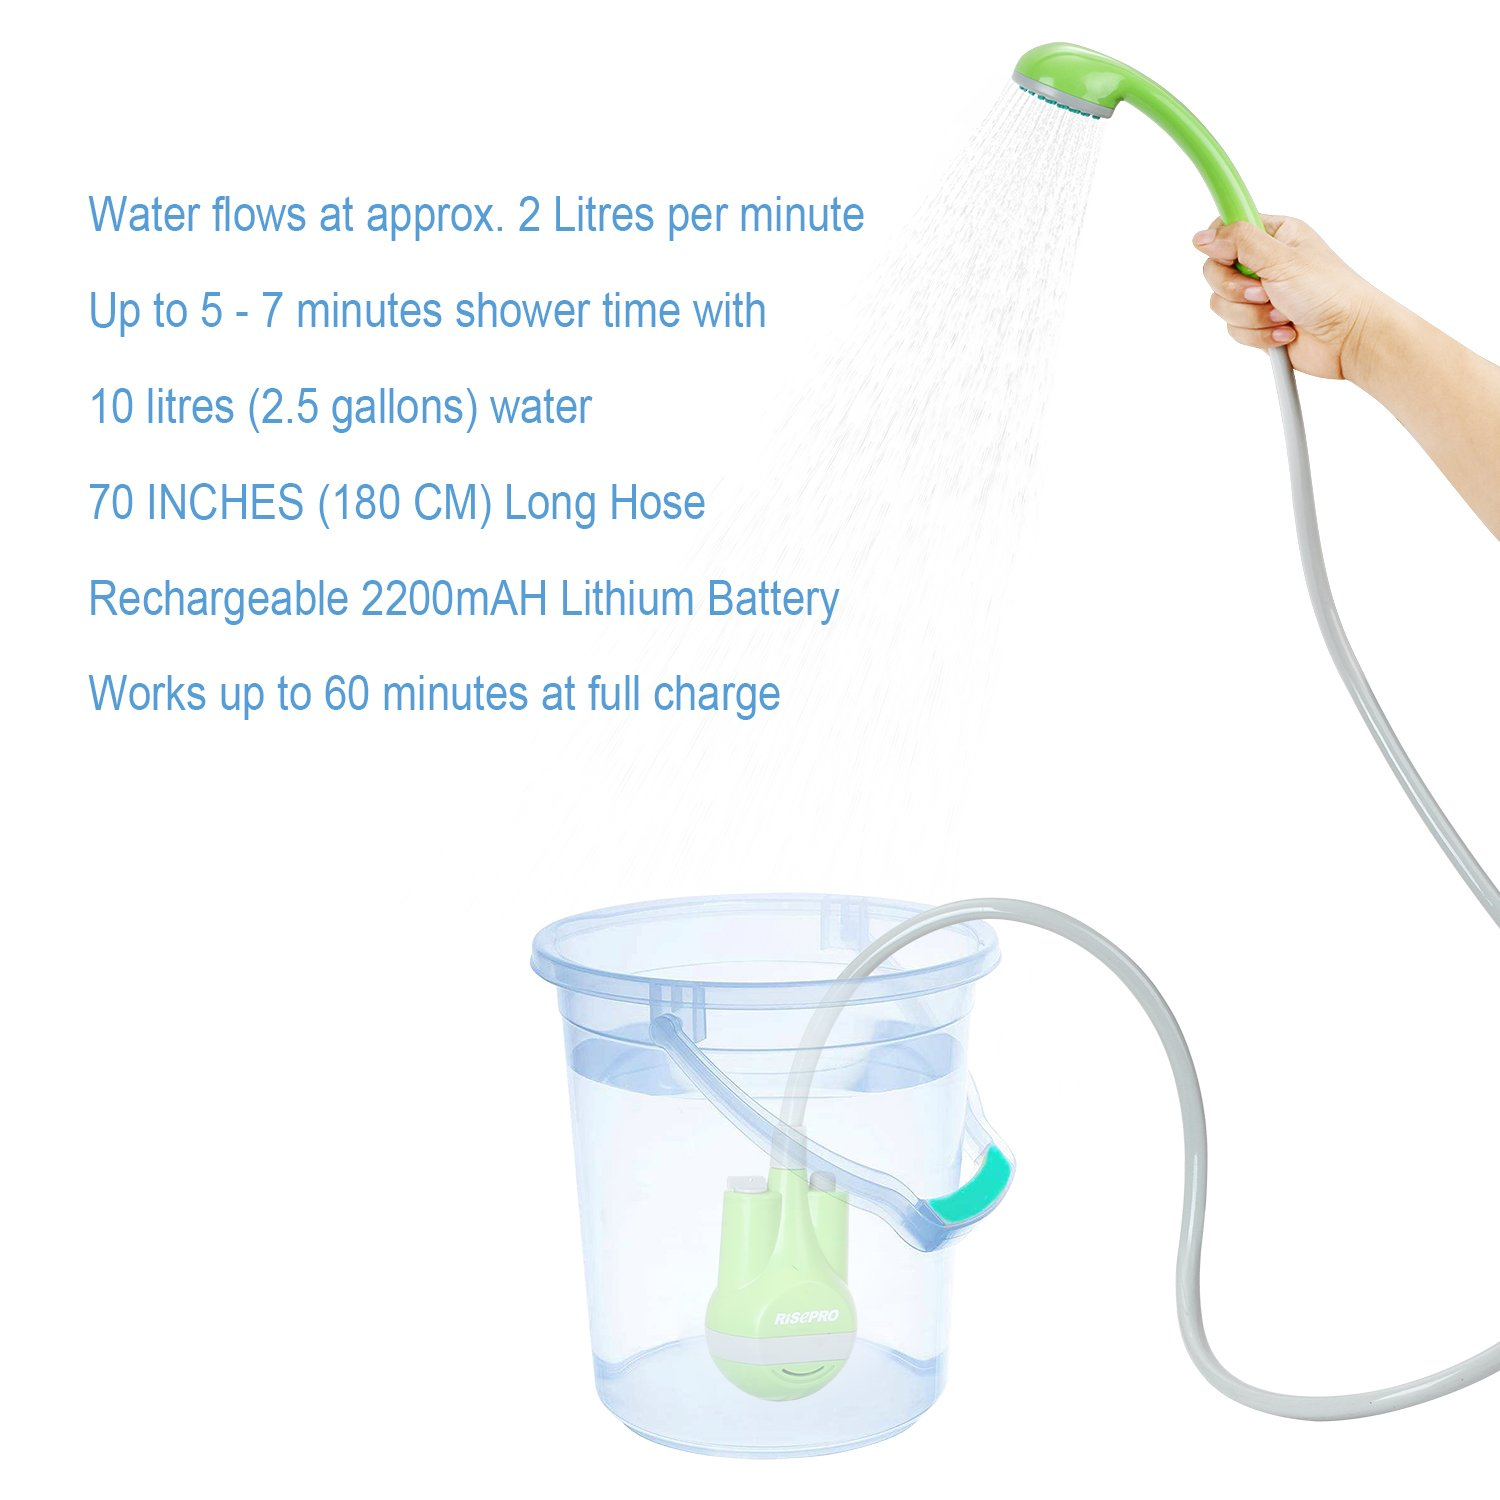 Portable Outdoor Shower Bidet Handheld Water Sprayer Portable Rechargeable Battery Powered 2200 mAh Battery Bidet Handheld Water Sprayer Portable